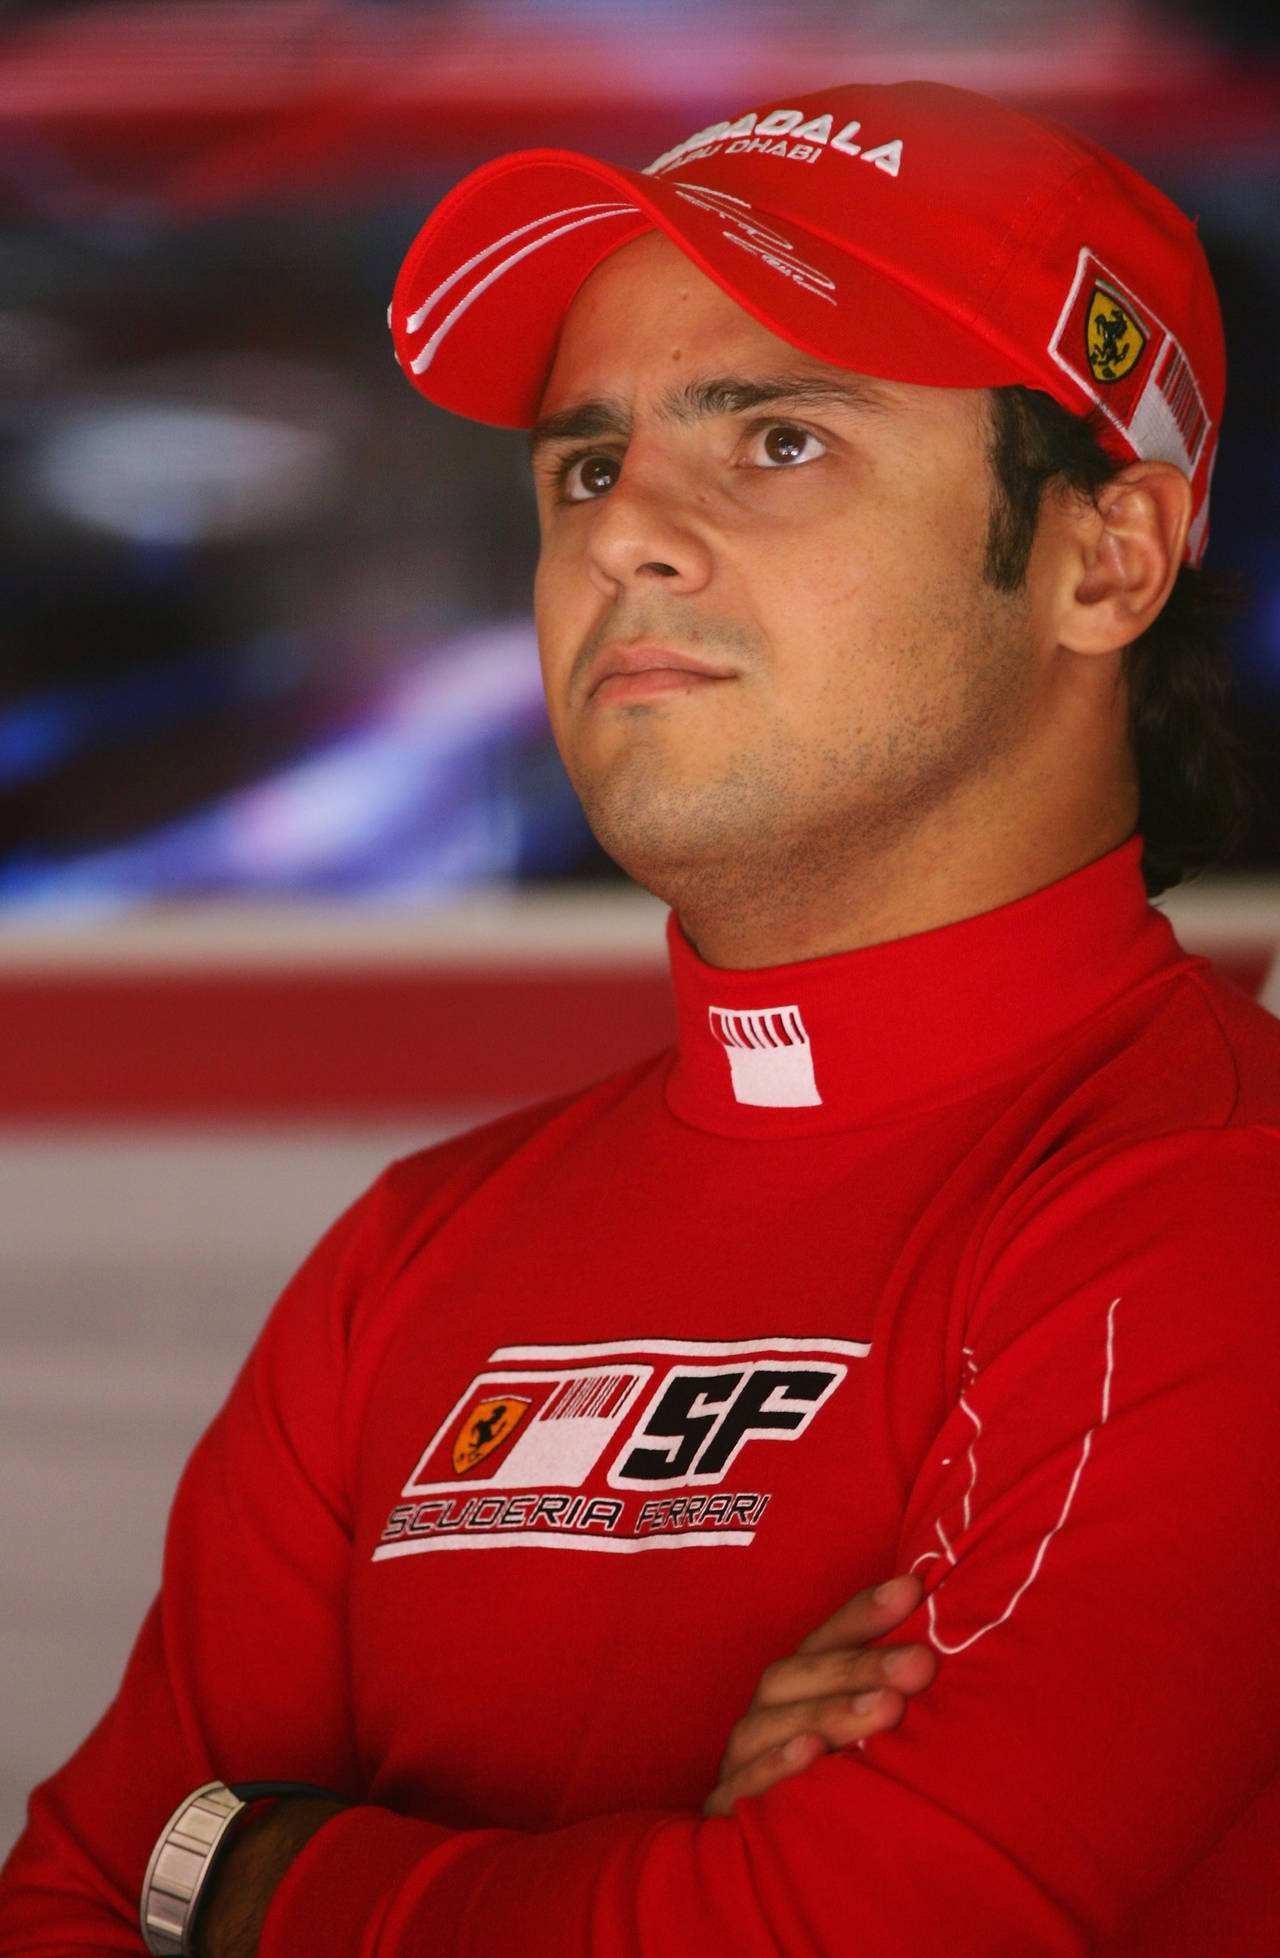 Felipe Massa earned a  million dollar salary, leaving the net worth at 30 million in 2017